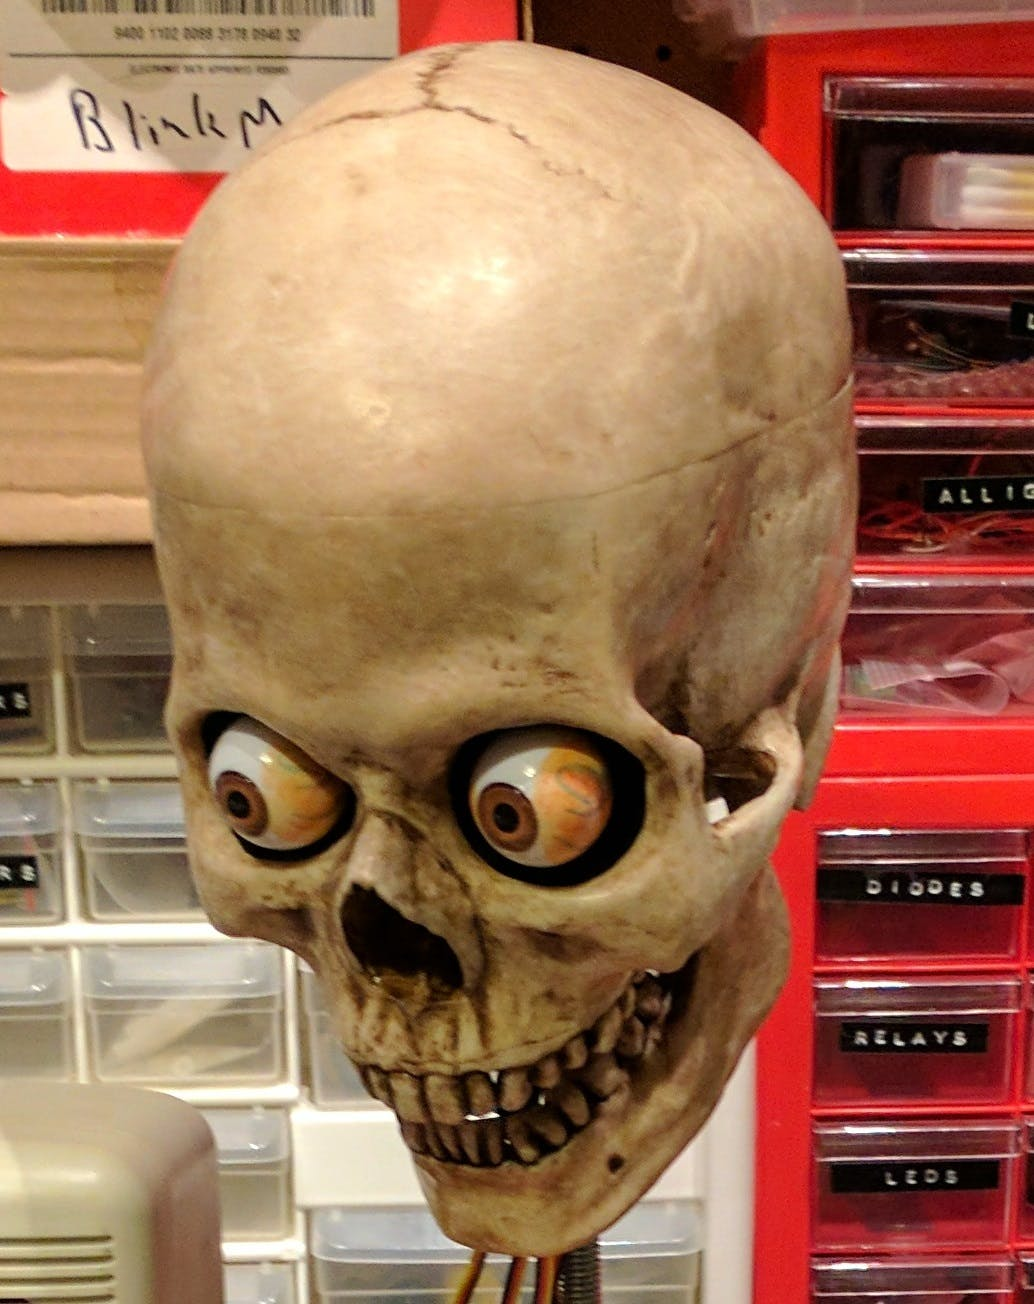 3-axis talking skull with moving eyes